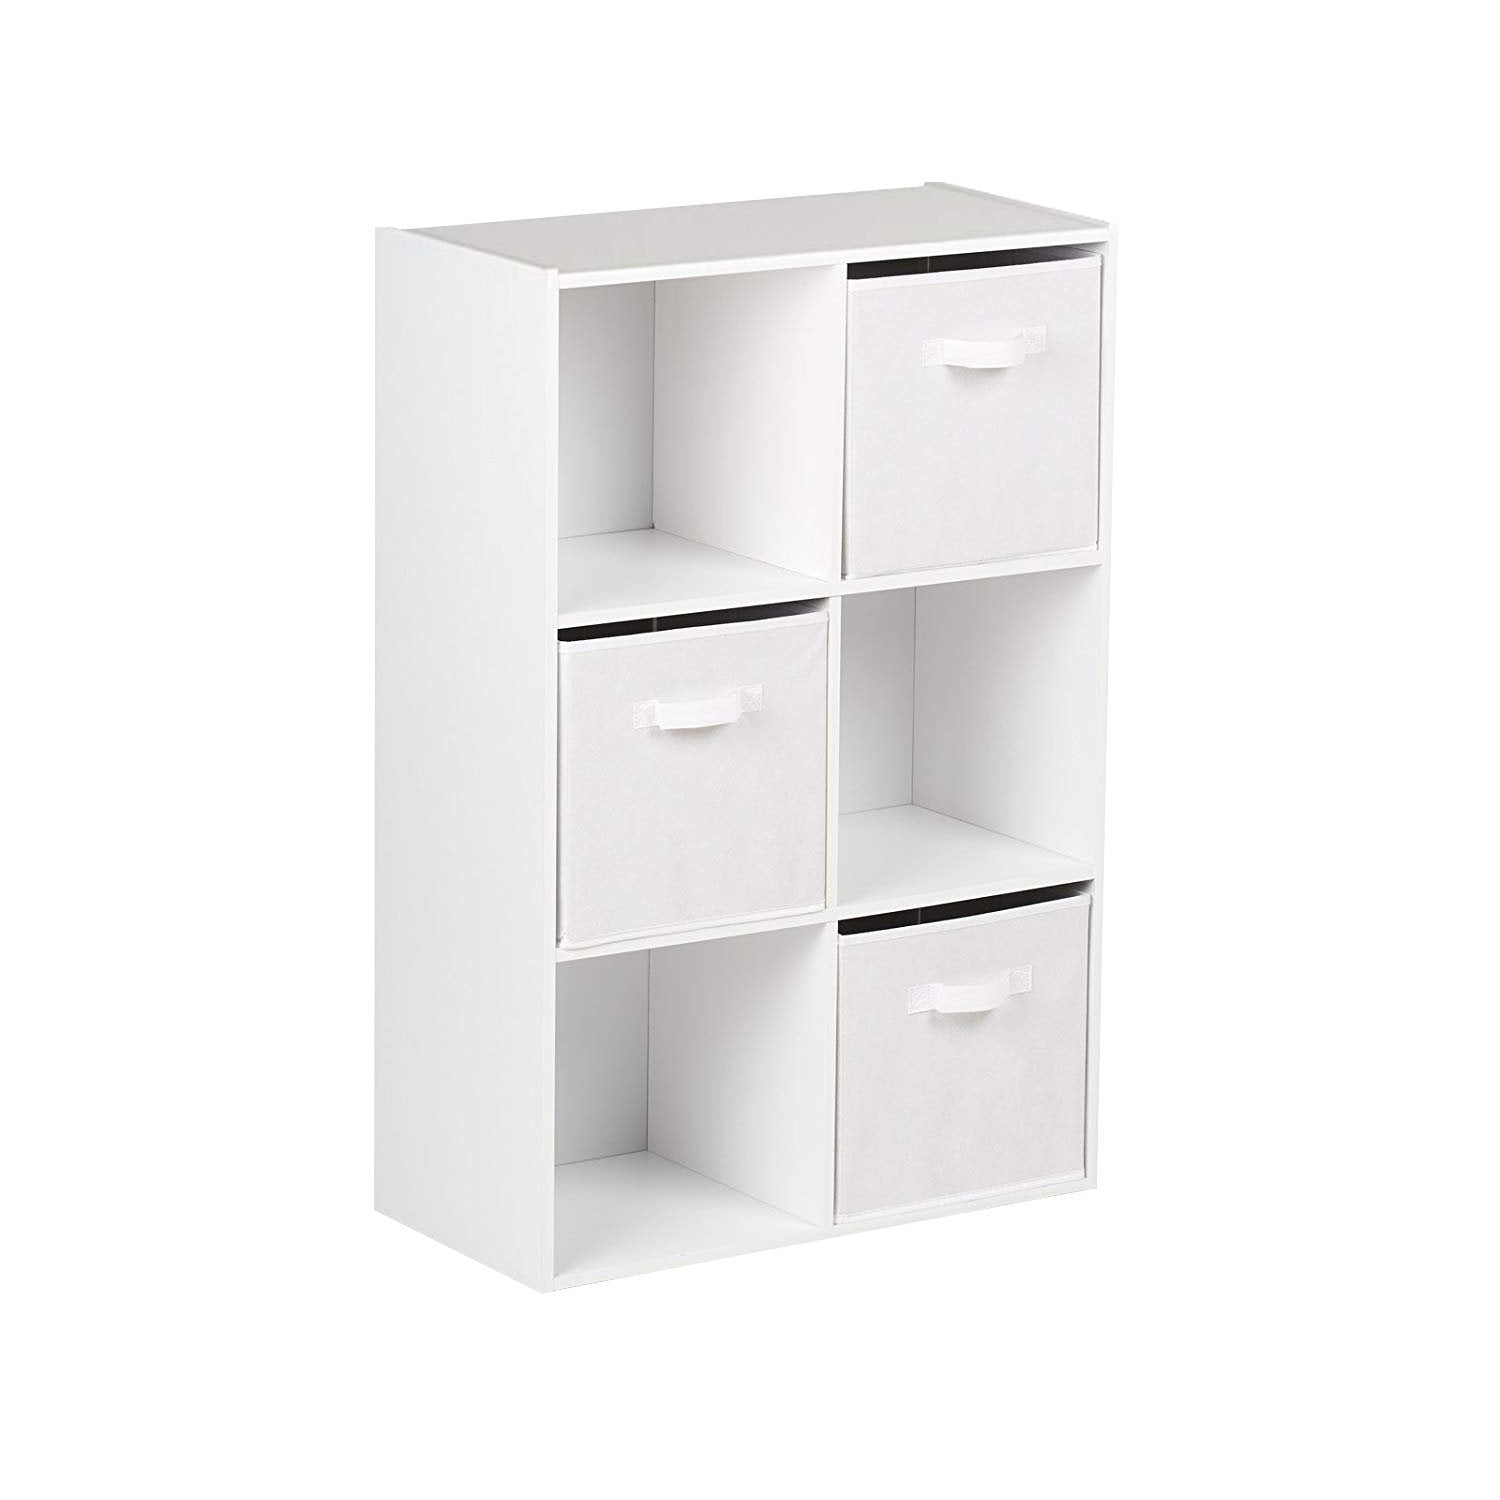 6 Cube White Bookcase Wooden Display Unit Shelving Storage Bookshelf Shelves (White Basket) - Laura James